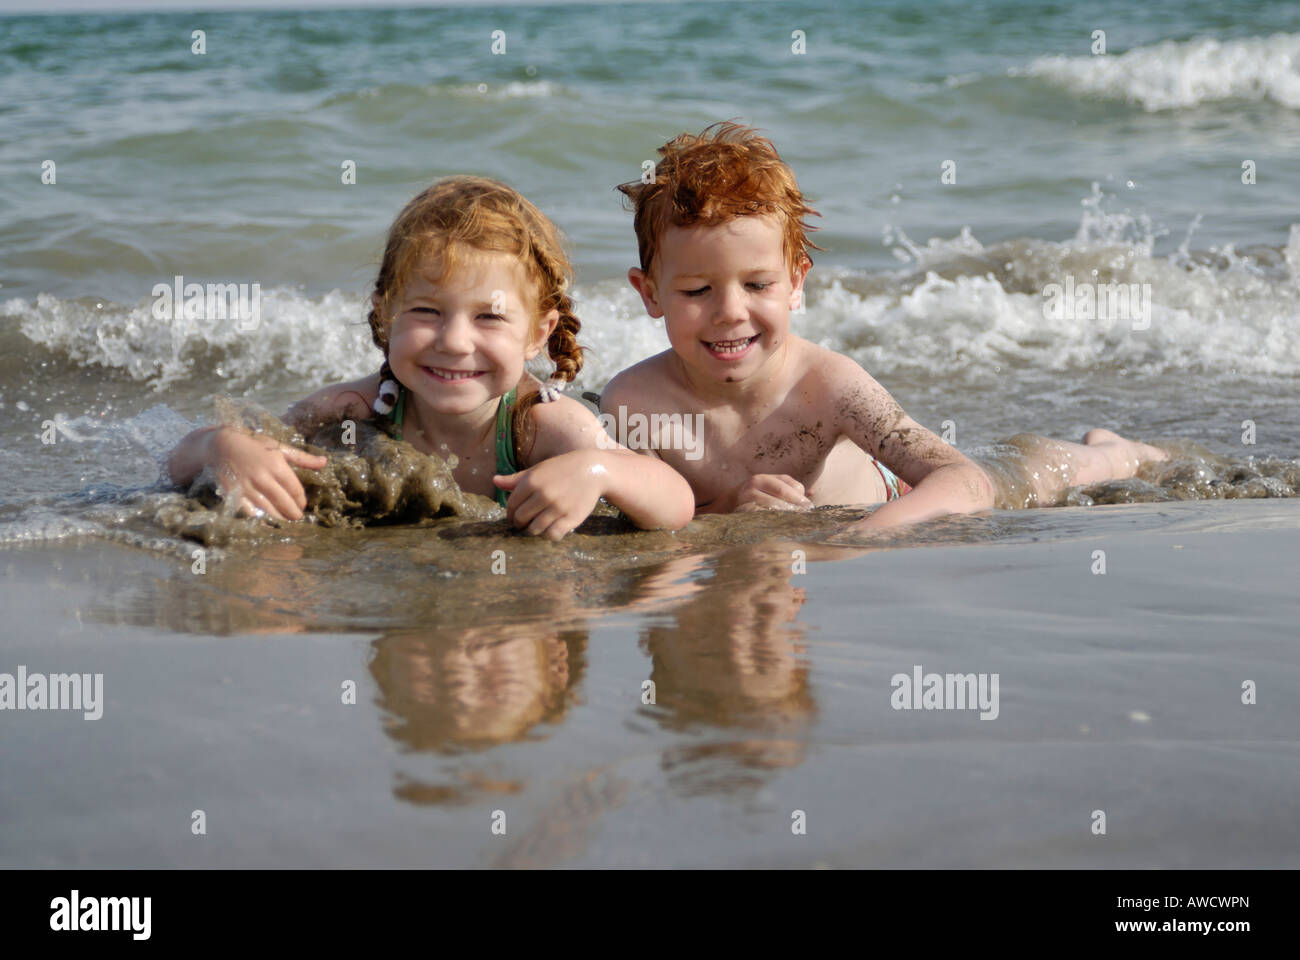 Two children are lying in the water at the beach and are having fun - Stock Image